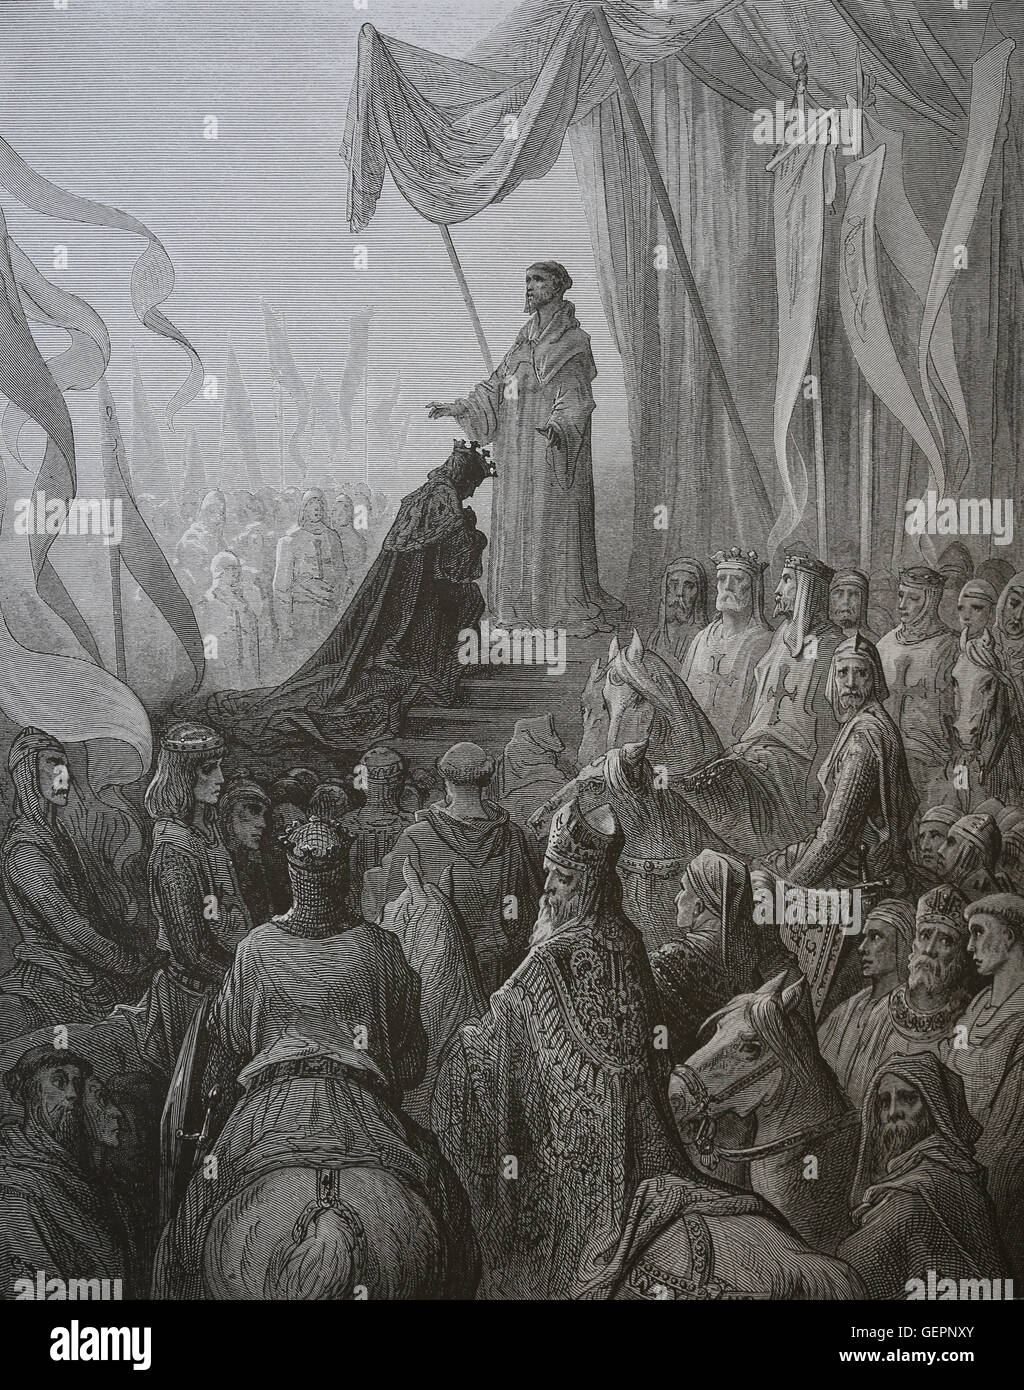 Second Crusade (1147-1149). Louis VII receiving the Cross from St. Bernard  of Clairvaux. Engraving by Gustave Dore, 19th century